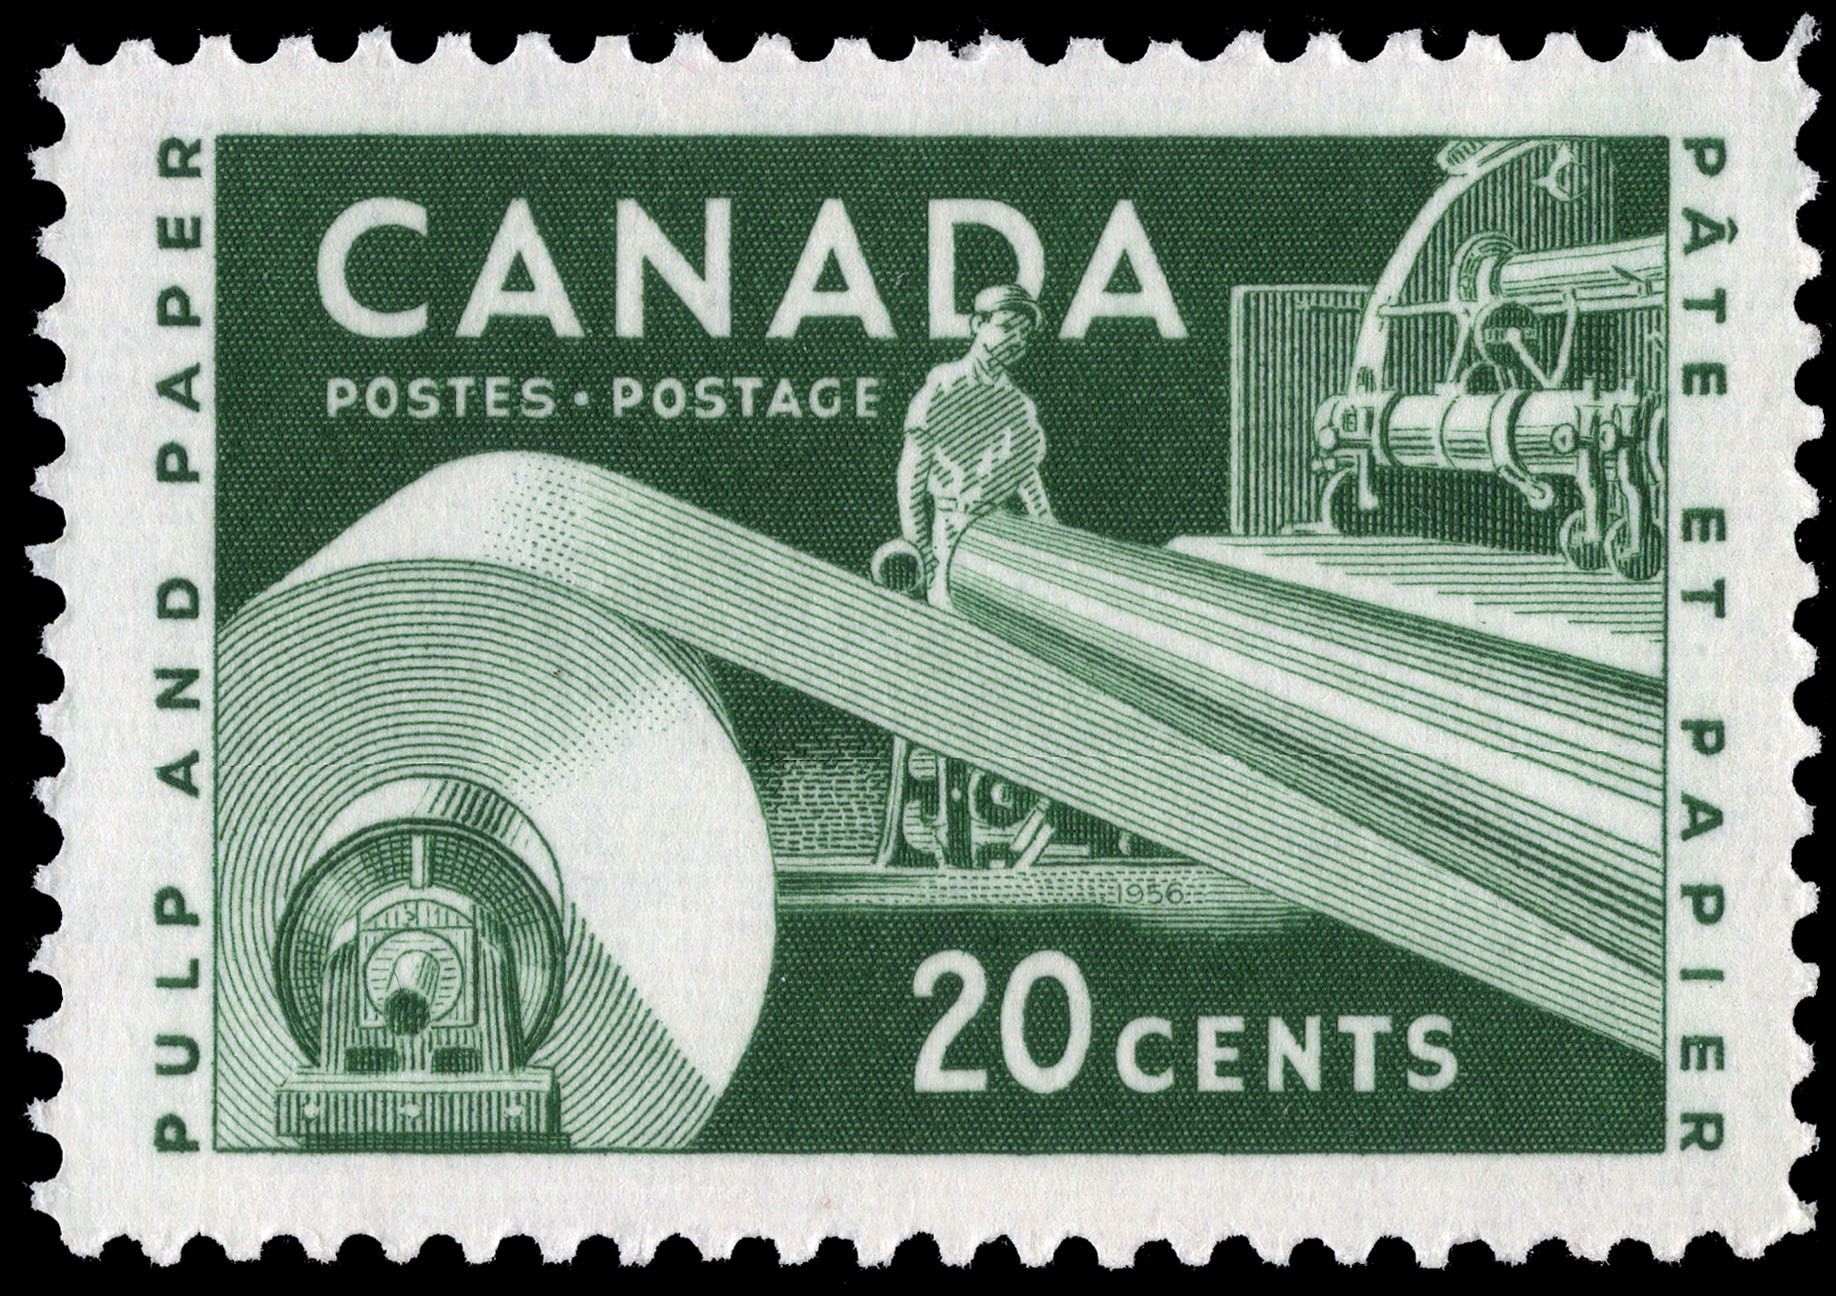 Pulp and Paper Canada Postage Stamp